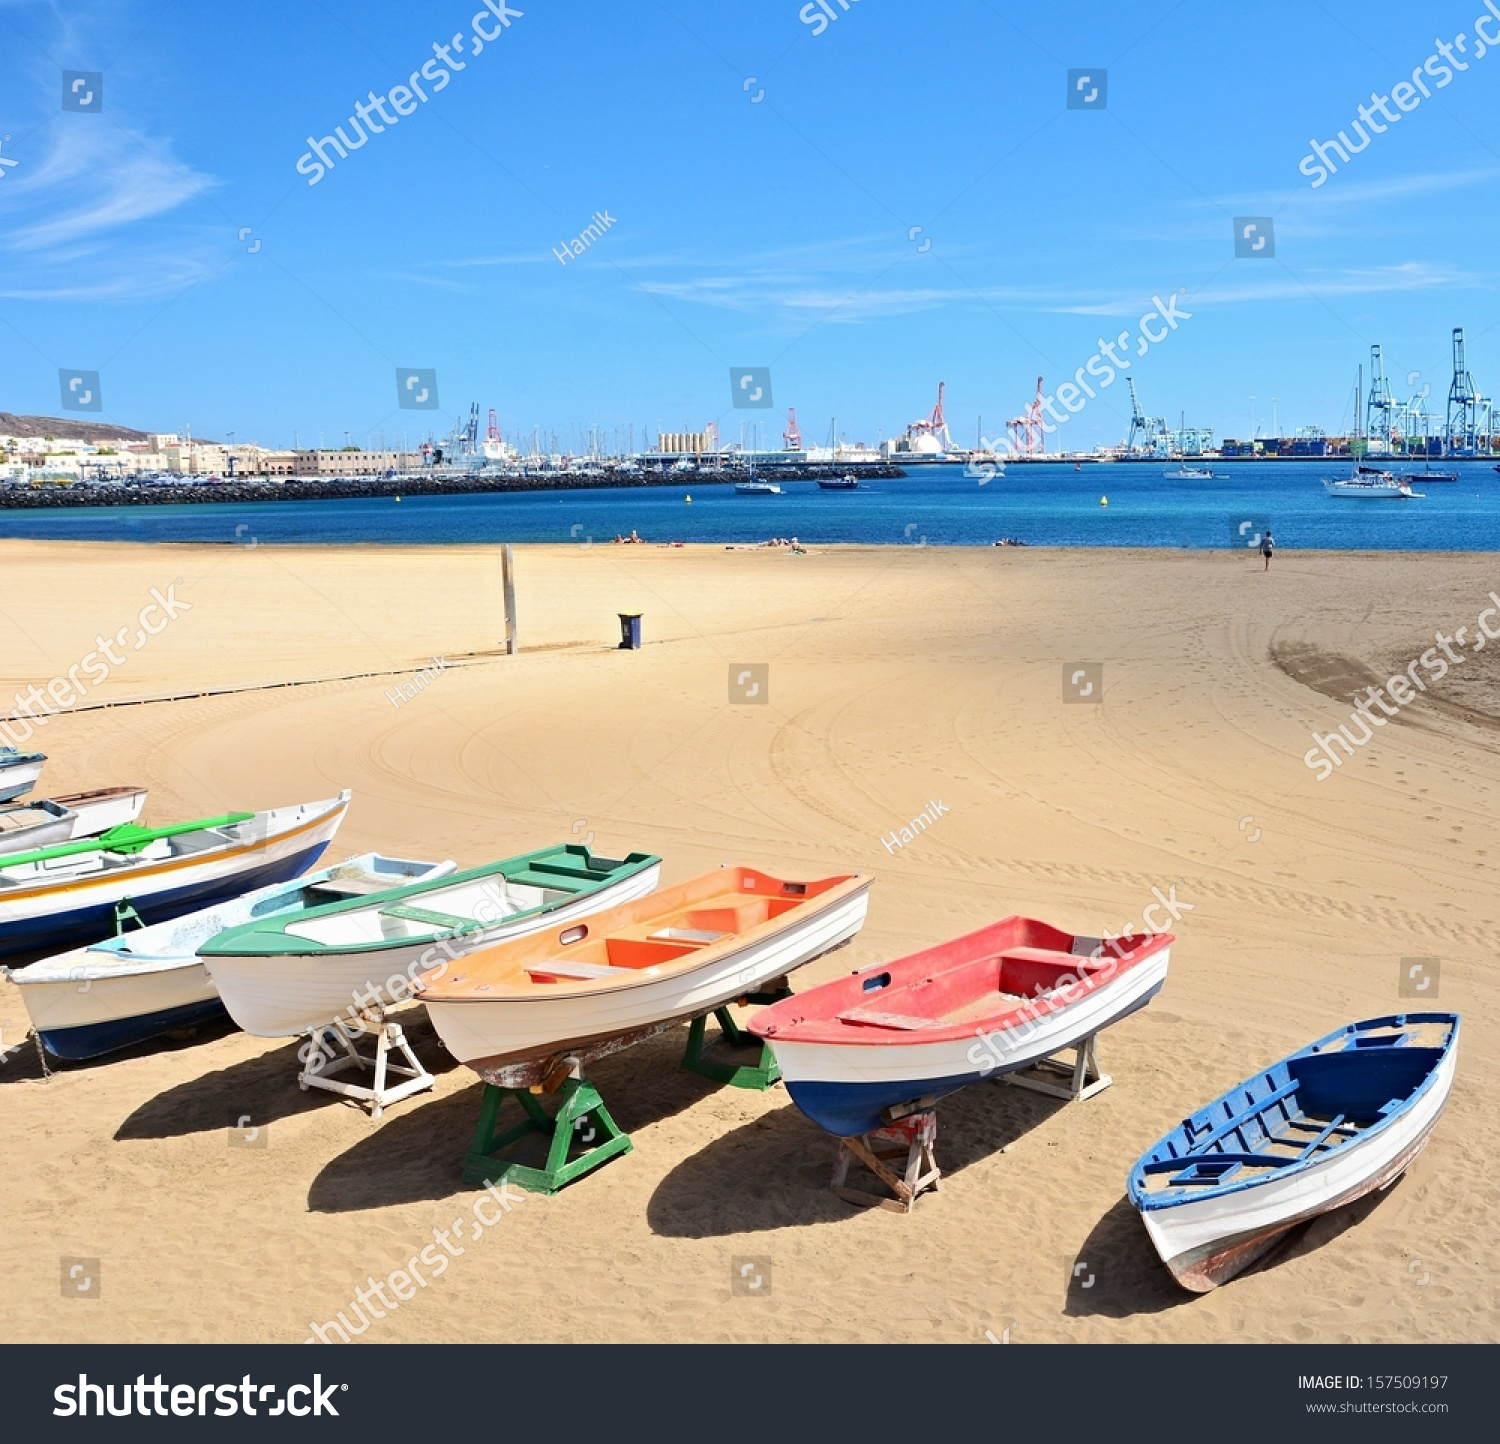 Beach with old boats and big port at las palmas gran canaria stock photo 157509197 shutterstock - Port of las palmas gran canaria ...